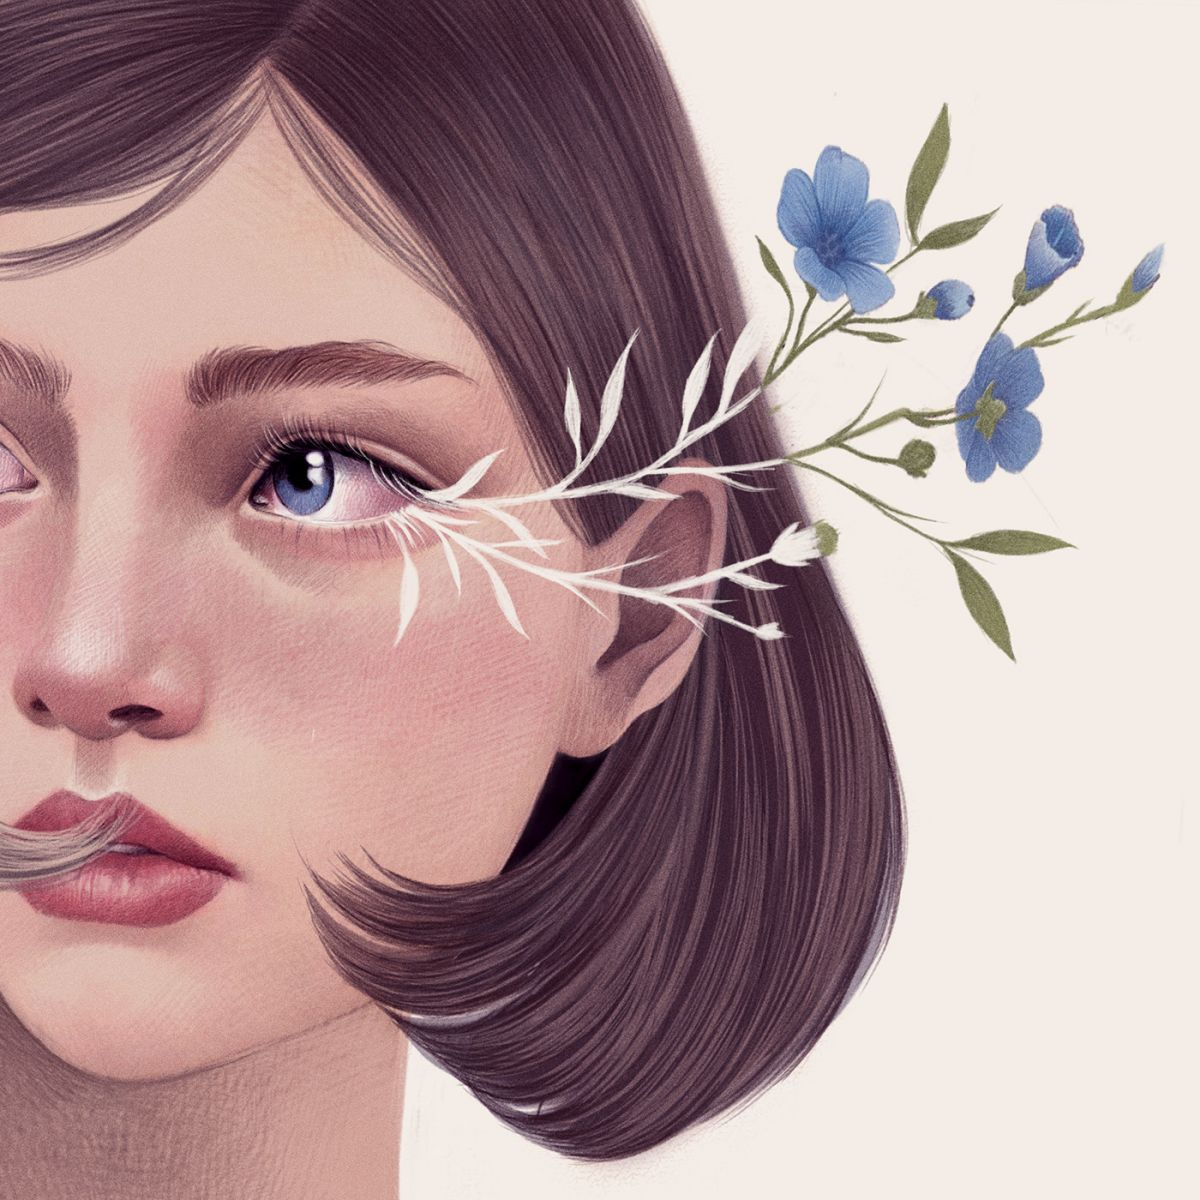 digital illustration woman portrait by mercedes debellard